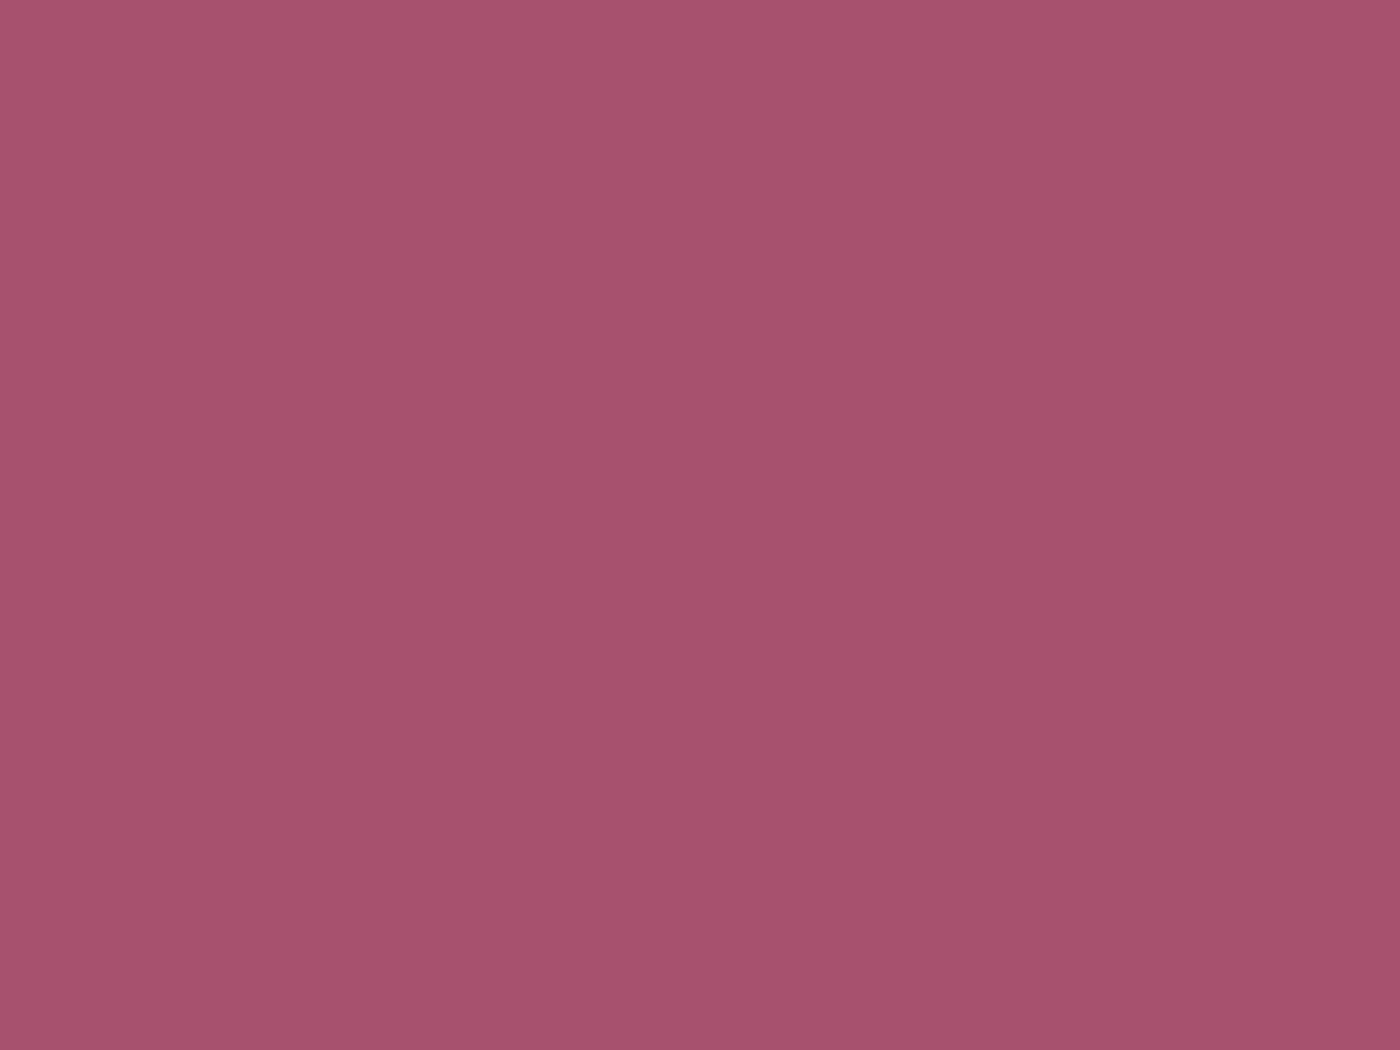 1400x1050 China Rose Solid Color Background